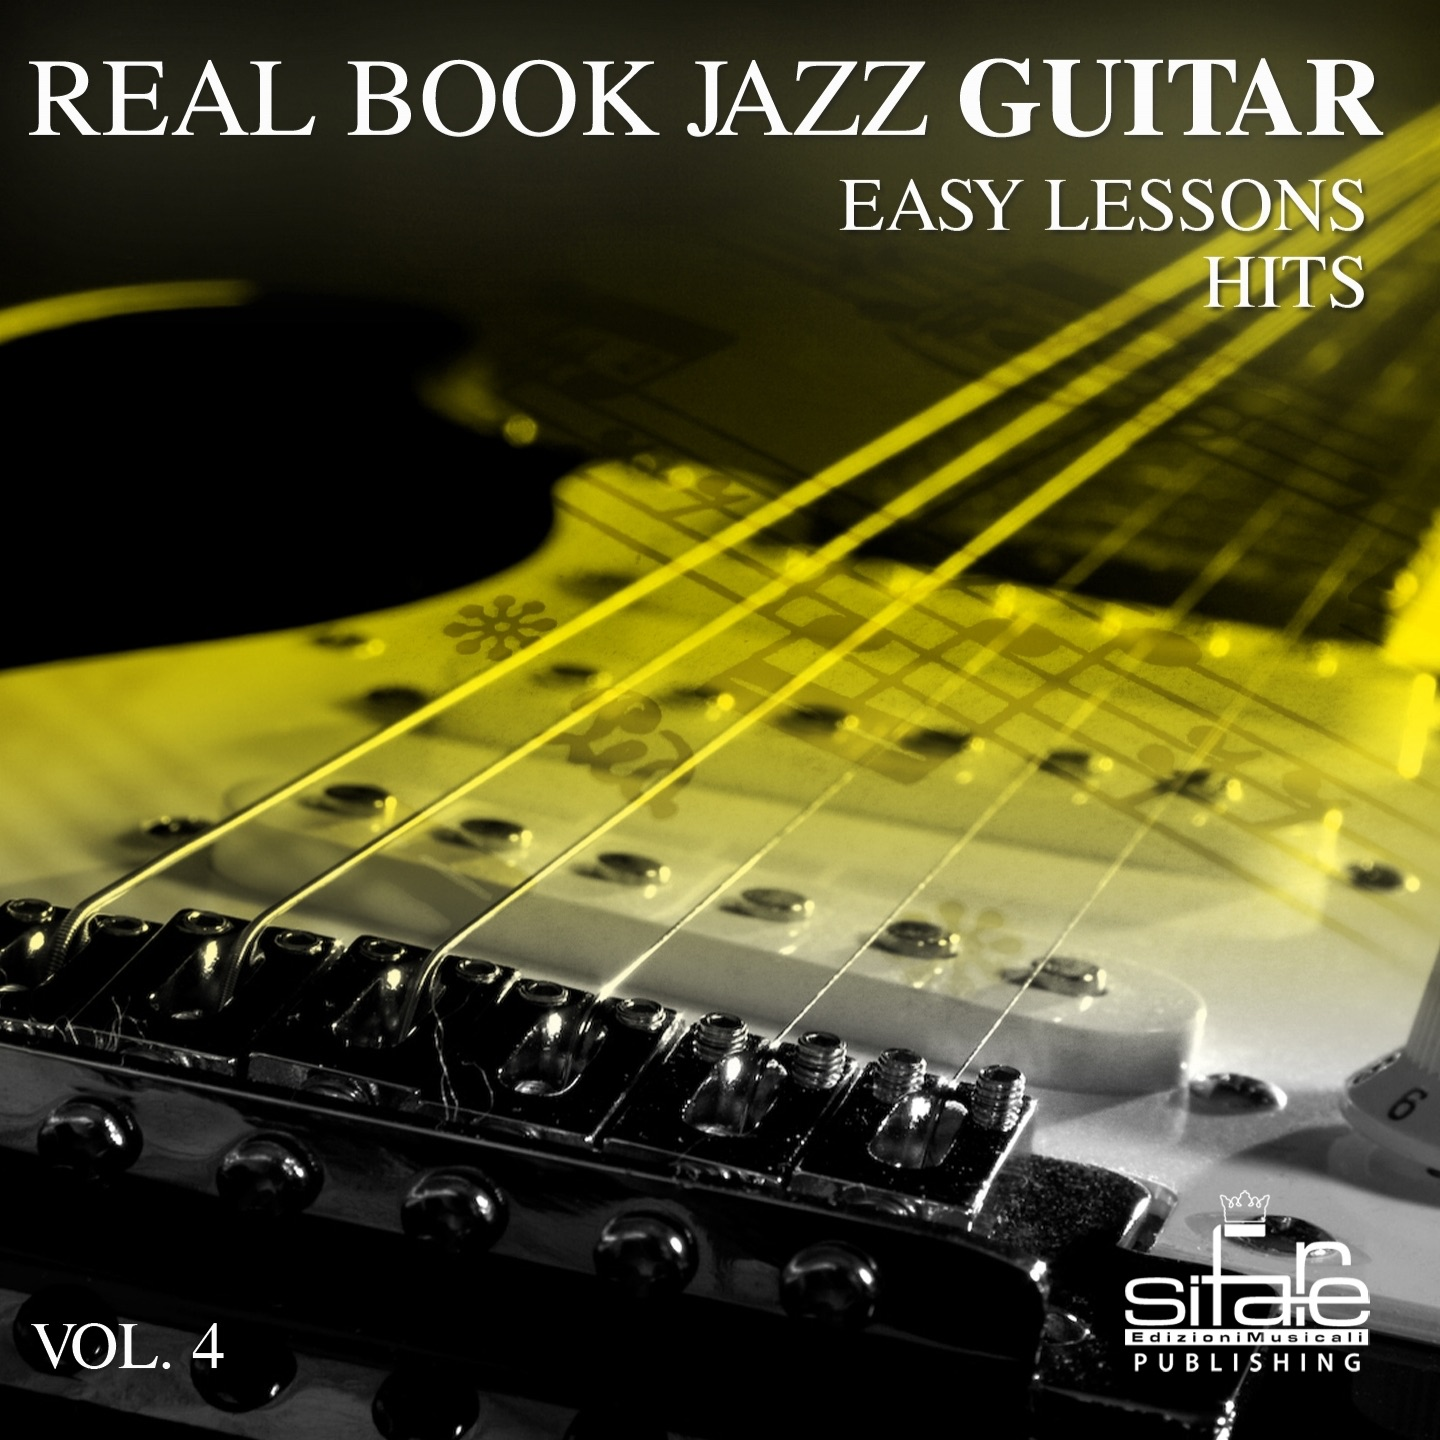 Real Book Jazz Guitar Easy Lessons, Vol. 4 (Jazz Guitar Hit Lessons) - Single